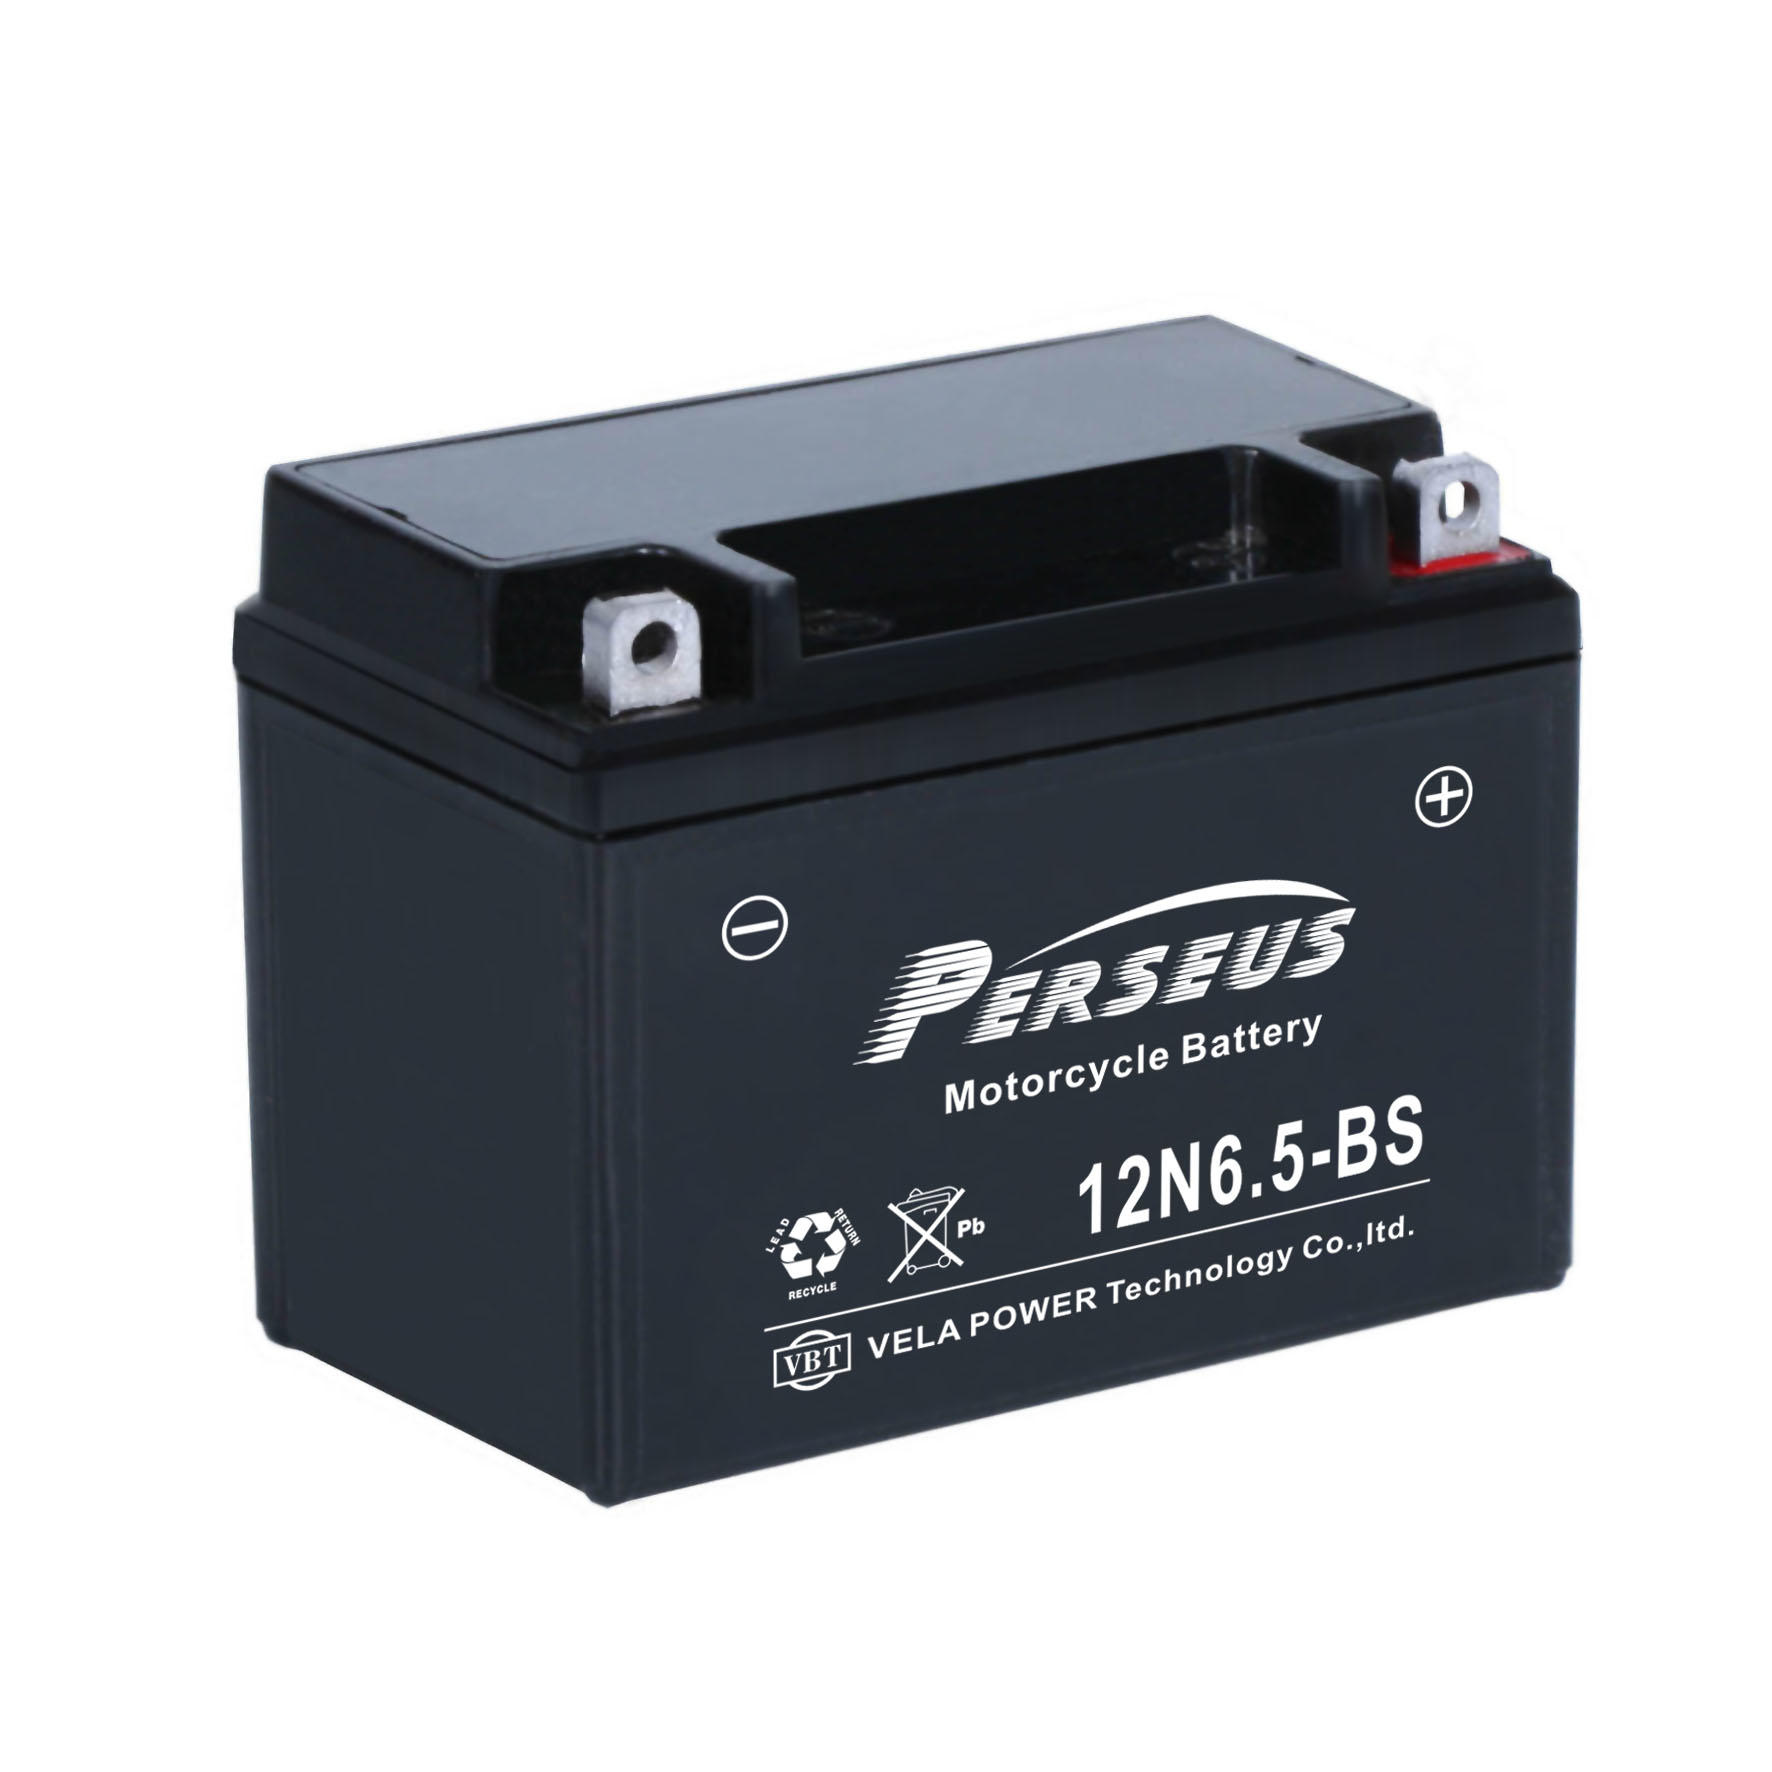 12N6.5 12V6.5AH Motorcycle Battery Factory Activated Power